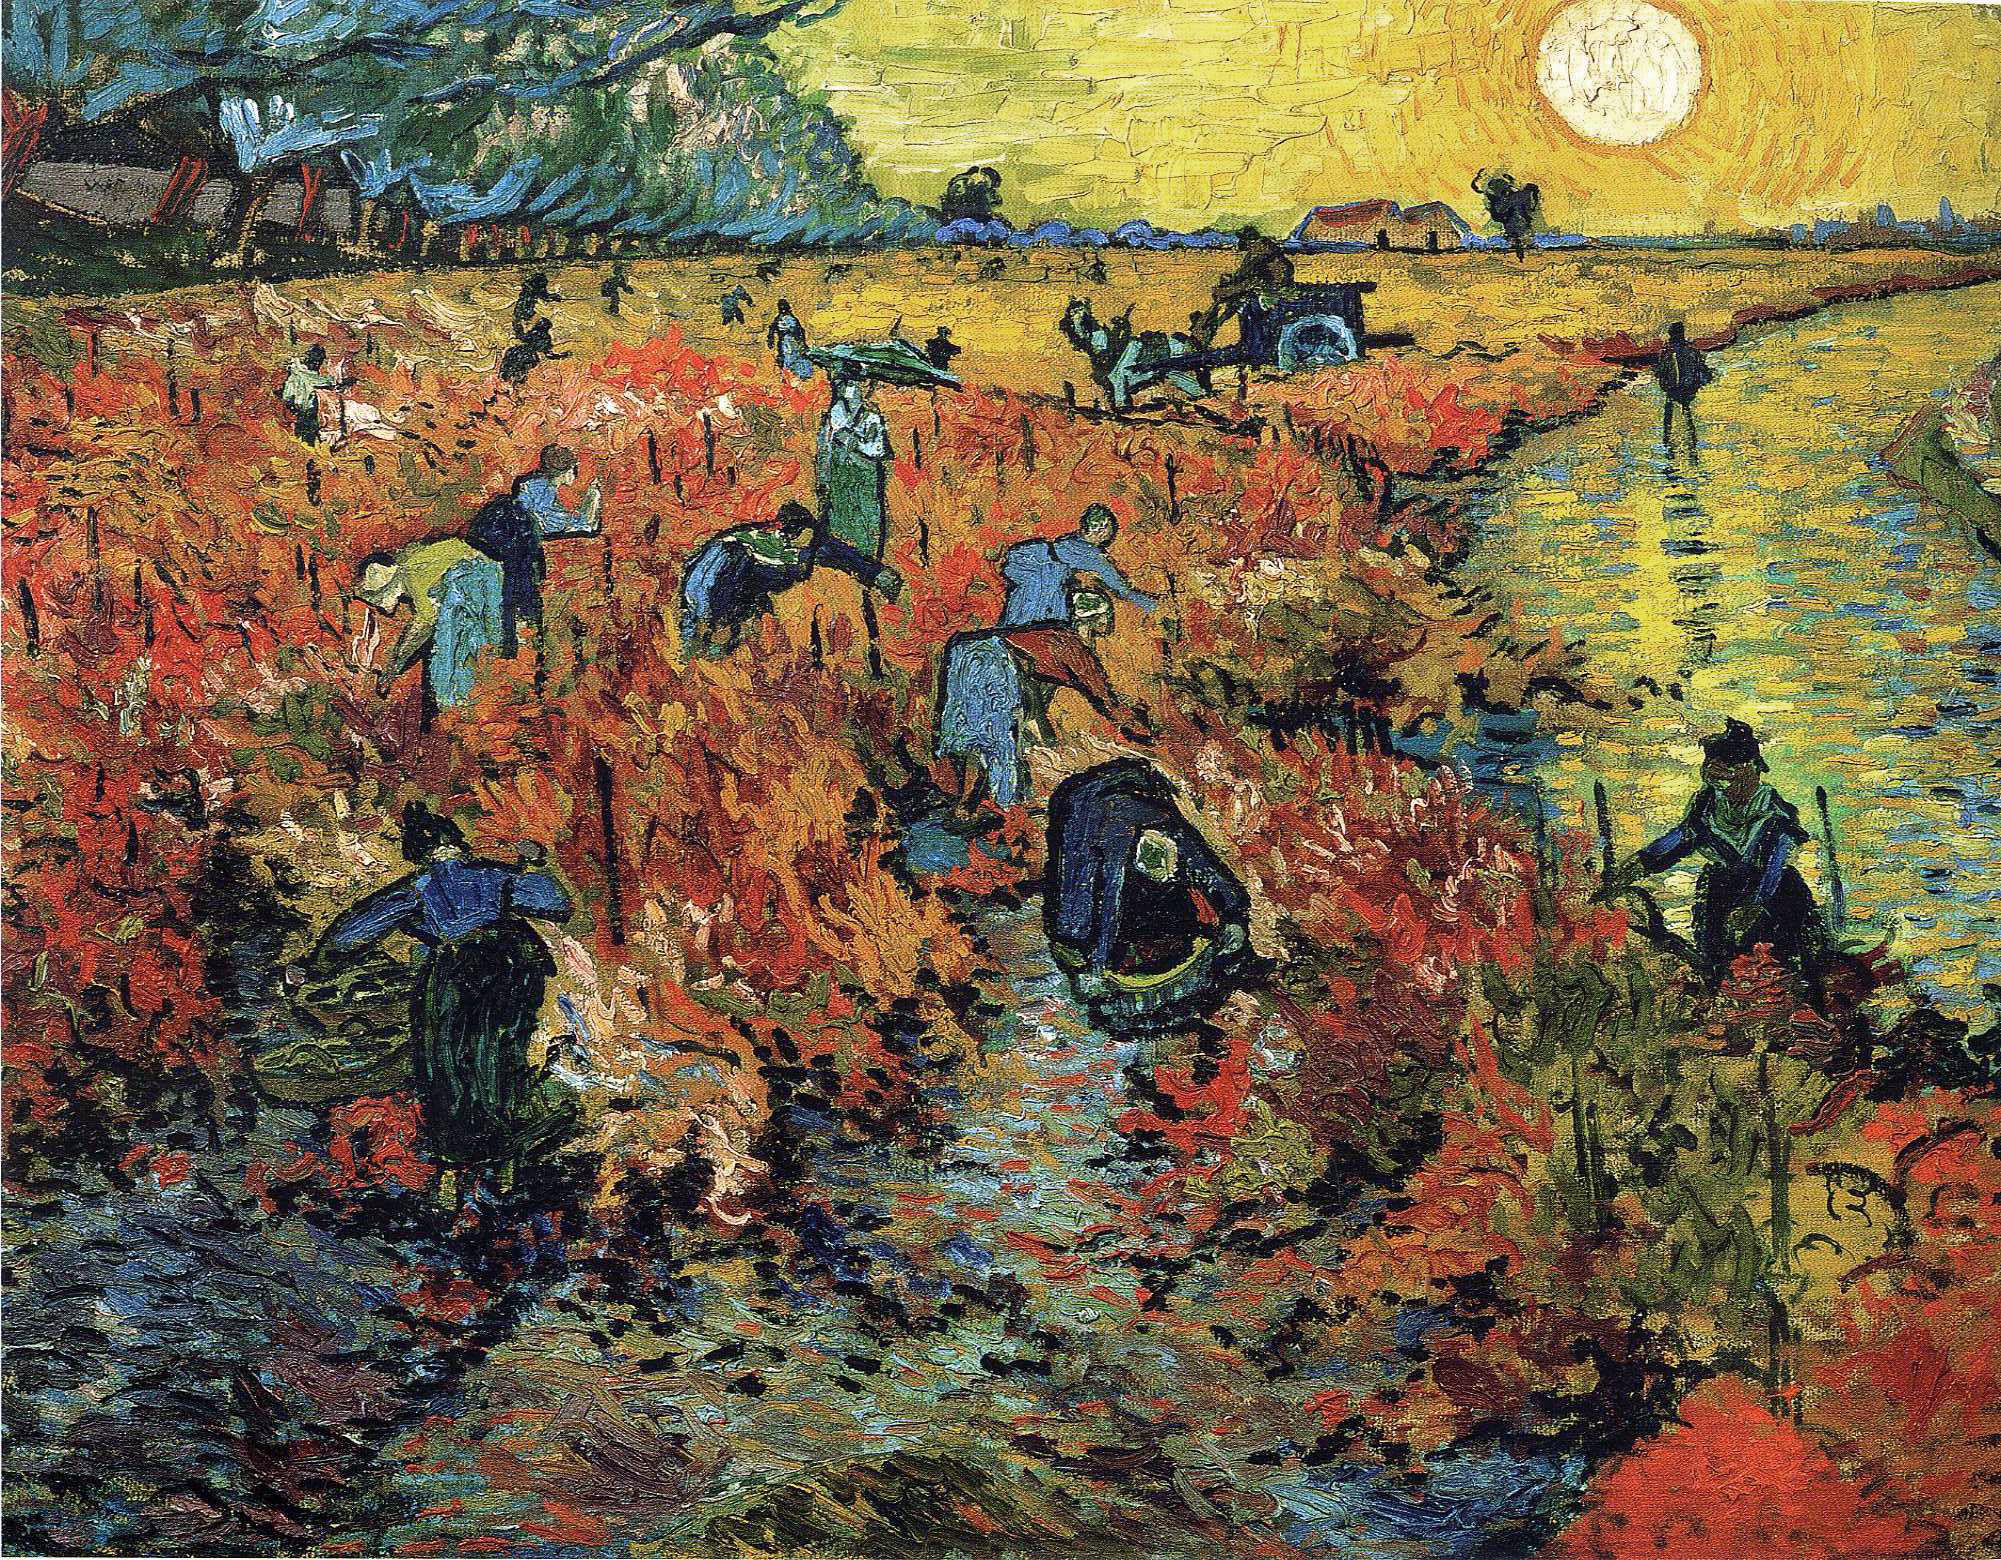 How Many Paintings Did Van Gogh Sell in His Lifetime?